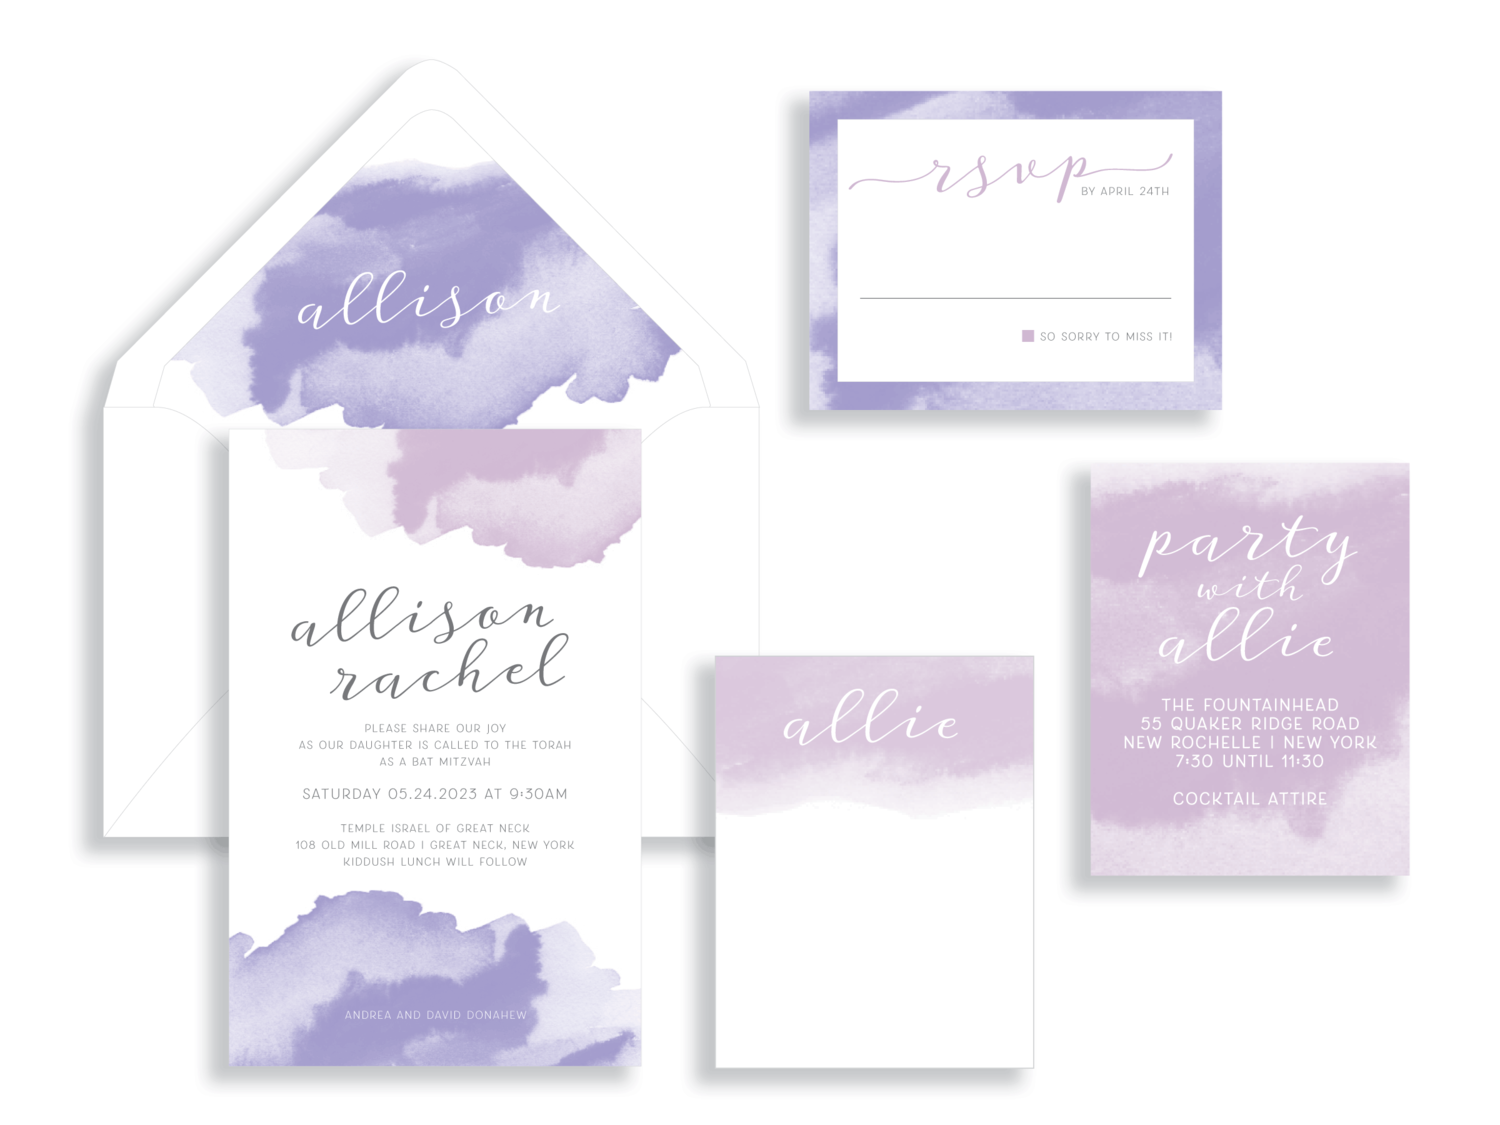 Bat Mitzvah invitation suite in watercolor wash shades of purple and rose.